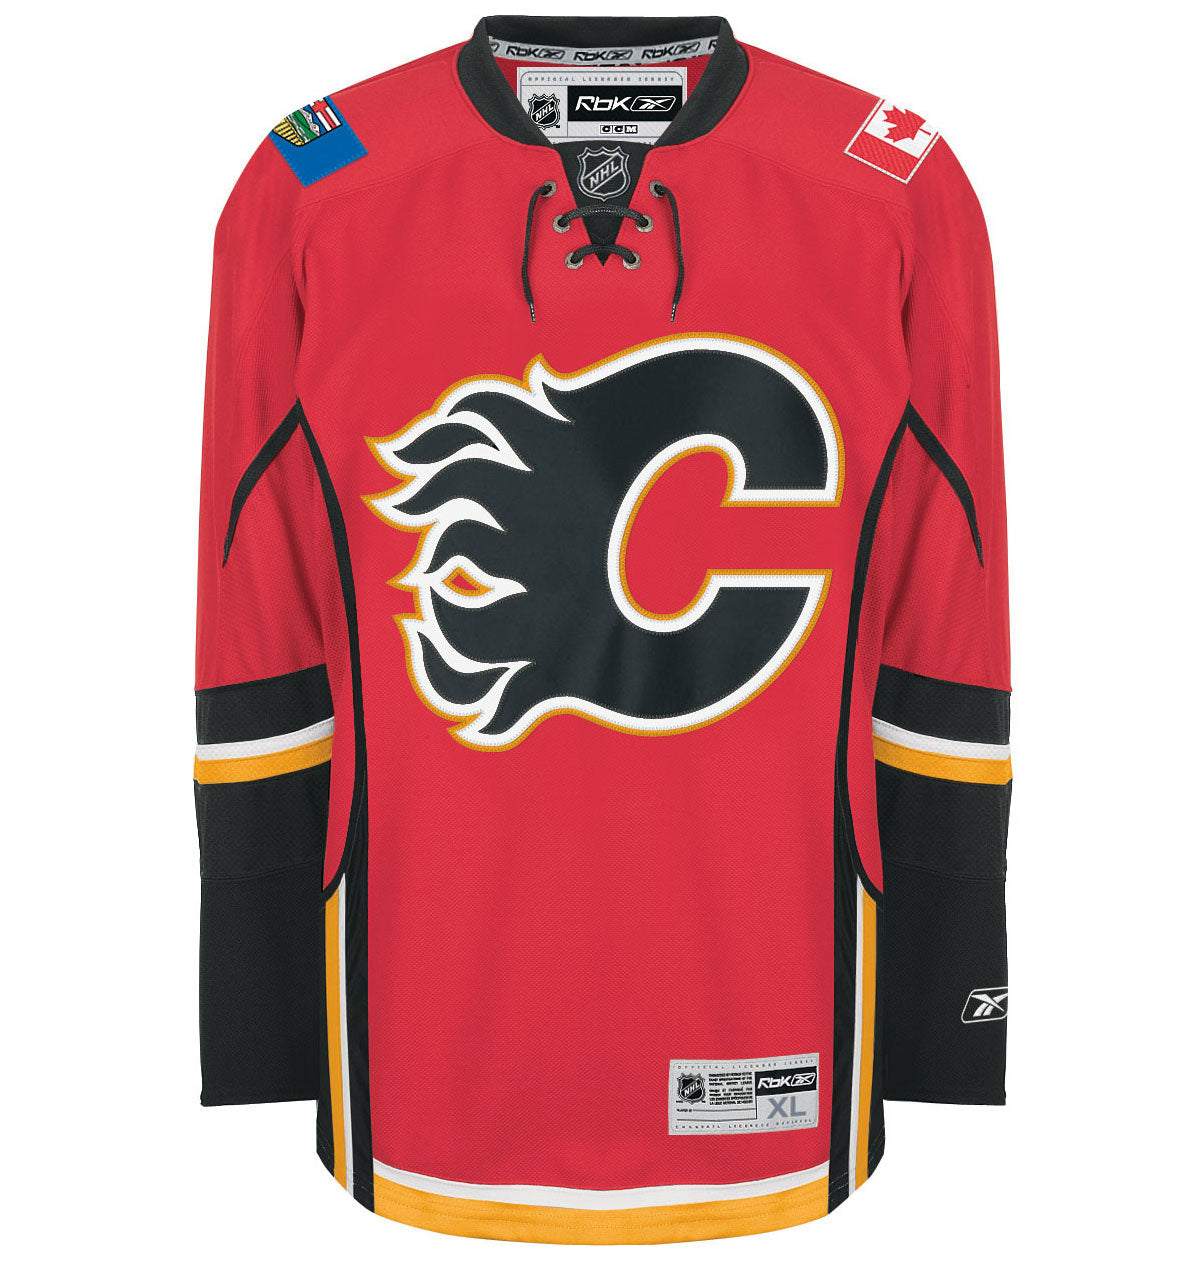 Captain C Official Patch For Calgary Flames Home 2003 17 Red Jersey Hockey Authentic